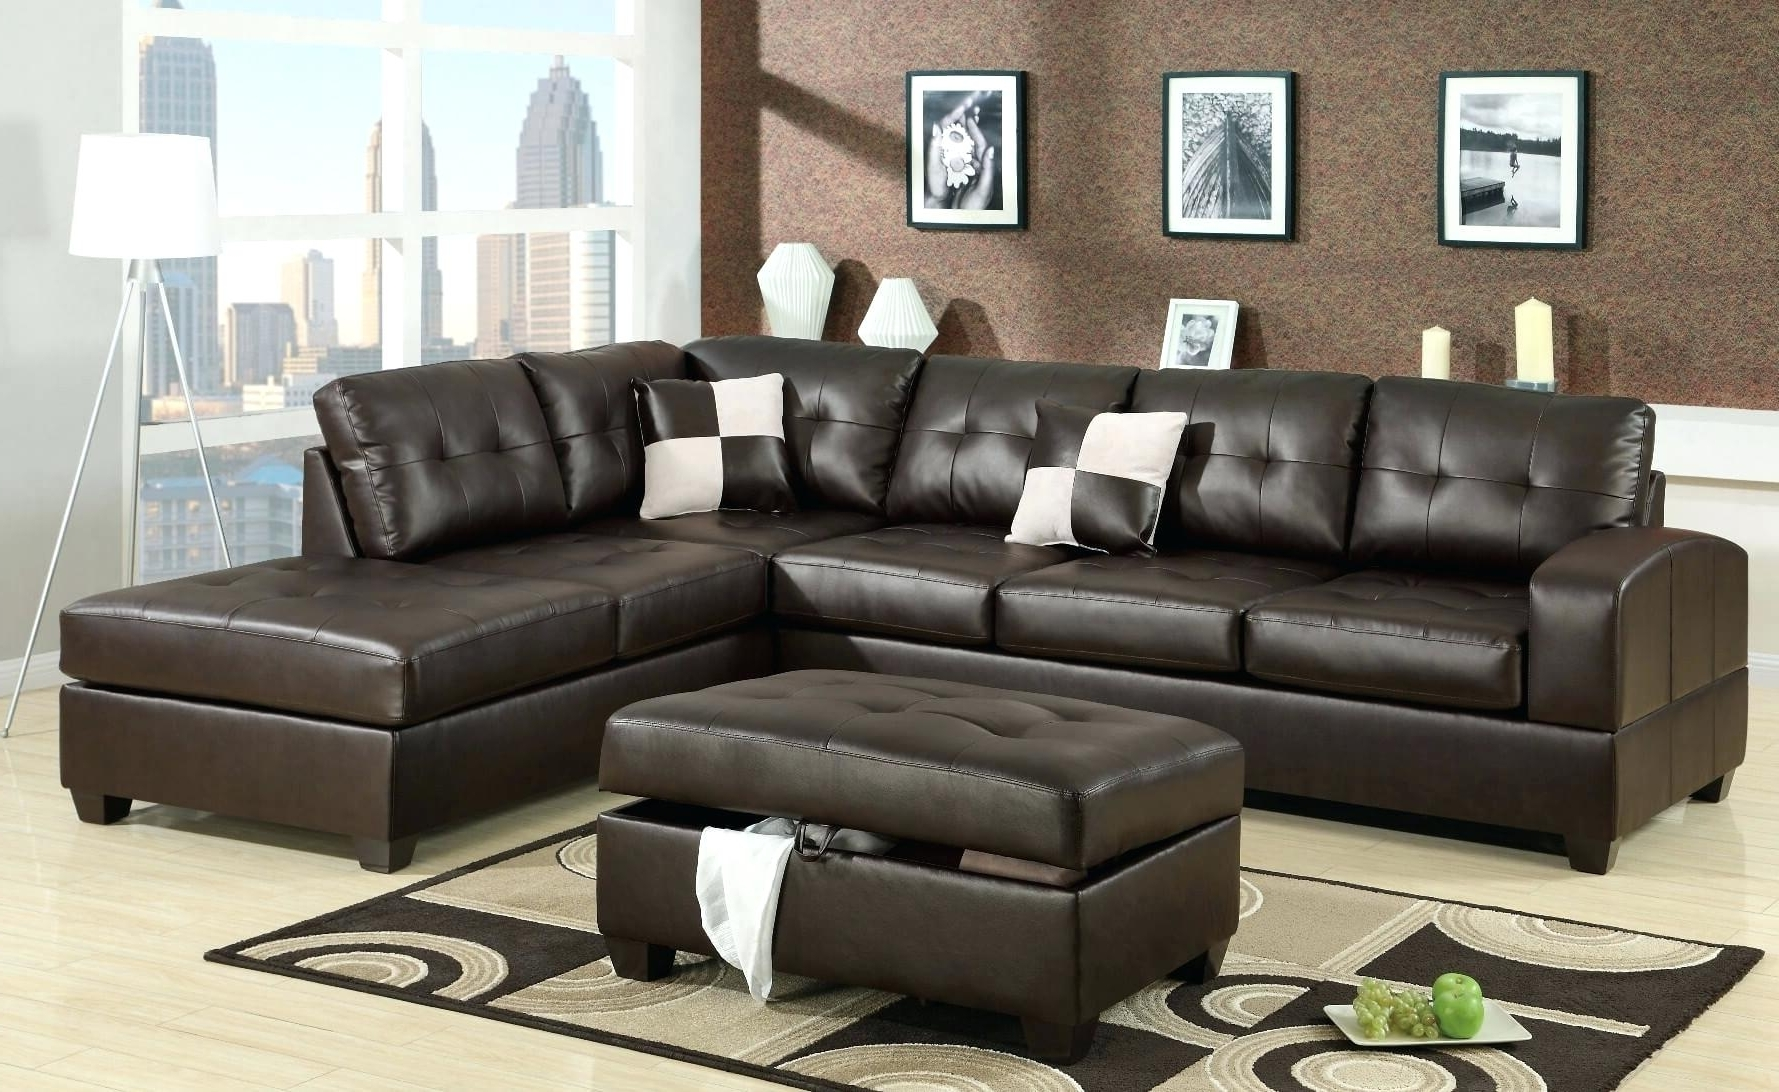 Well Known Clearance Sectional Sofas Within Leather Sofas Clearance Sas Sa Sectional Sofa And Loveseat Uk (View 17 of 20)